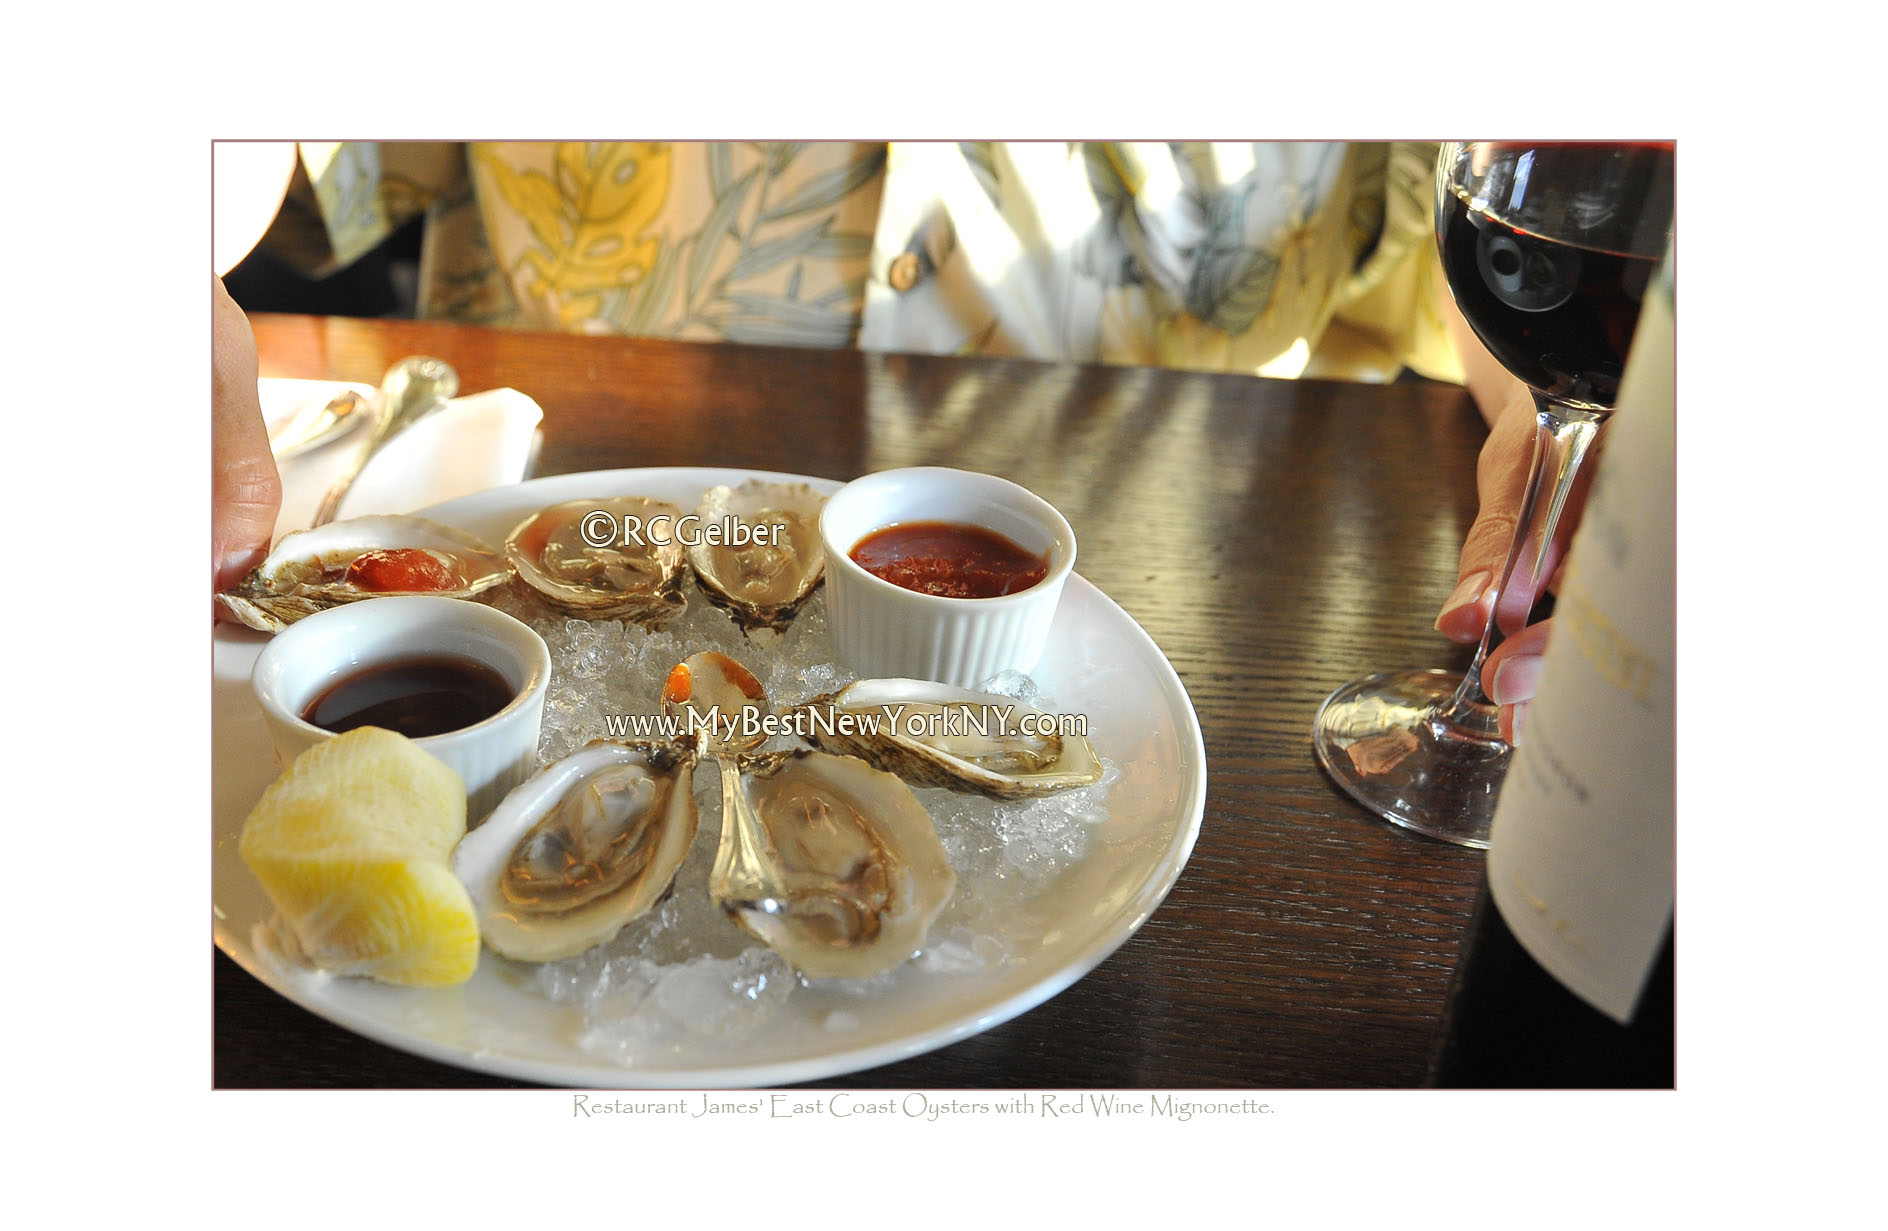 We are hooked on Brooklyn Restaurant James' East Coast 